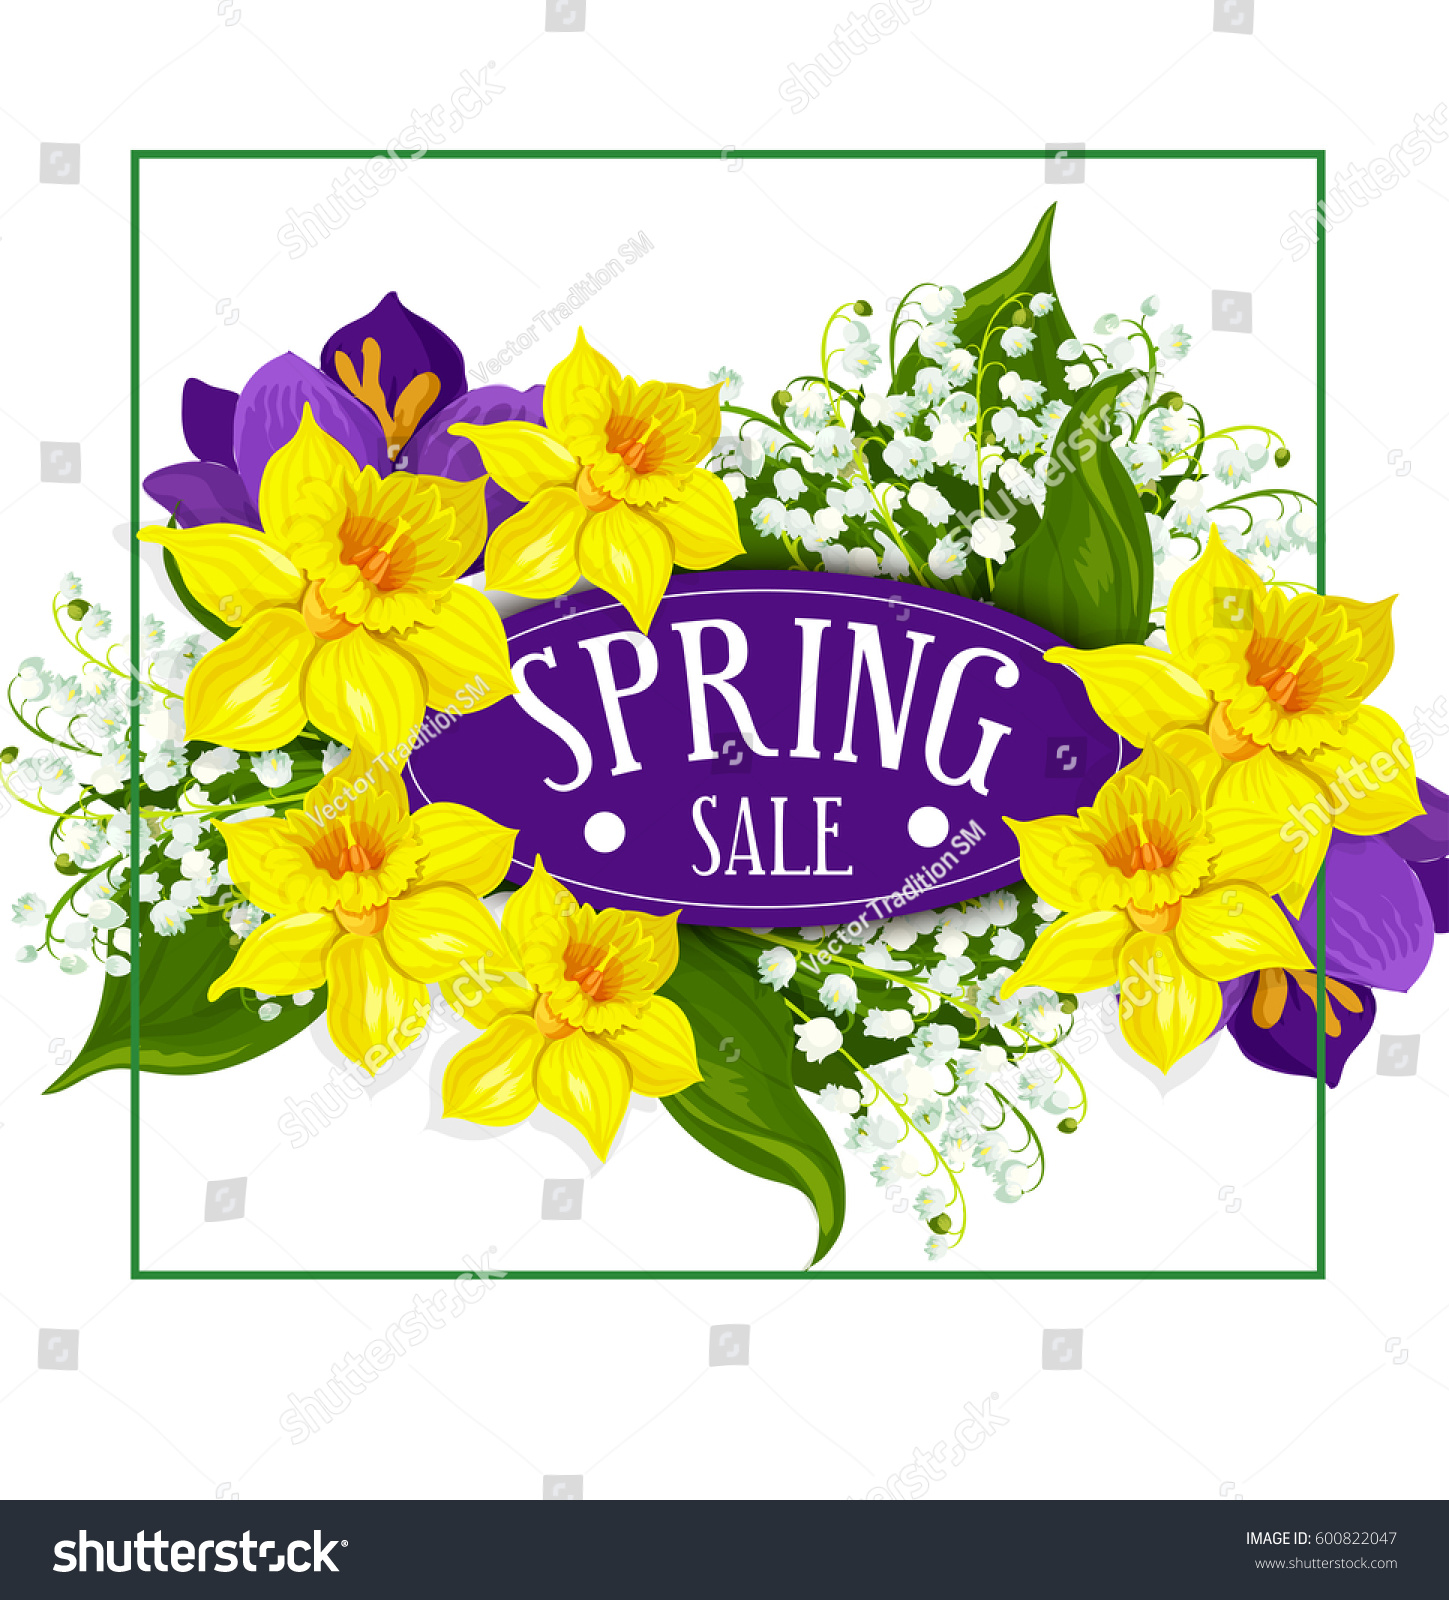 Spring sale poster daffodils yellow flowers stock photo photo spring sale poster of daffodils yellow flowers bouquet and springtime lily of valley and blue crocuses izmirmasajfo